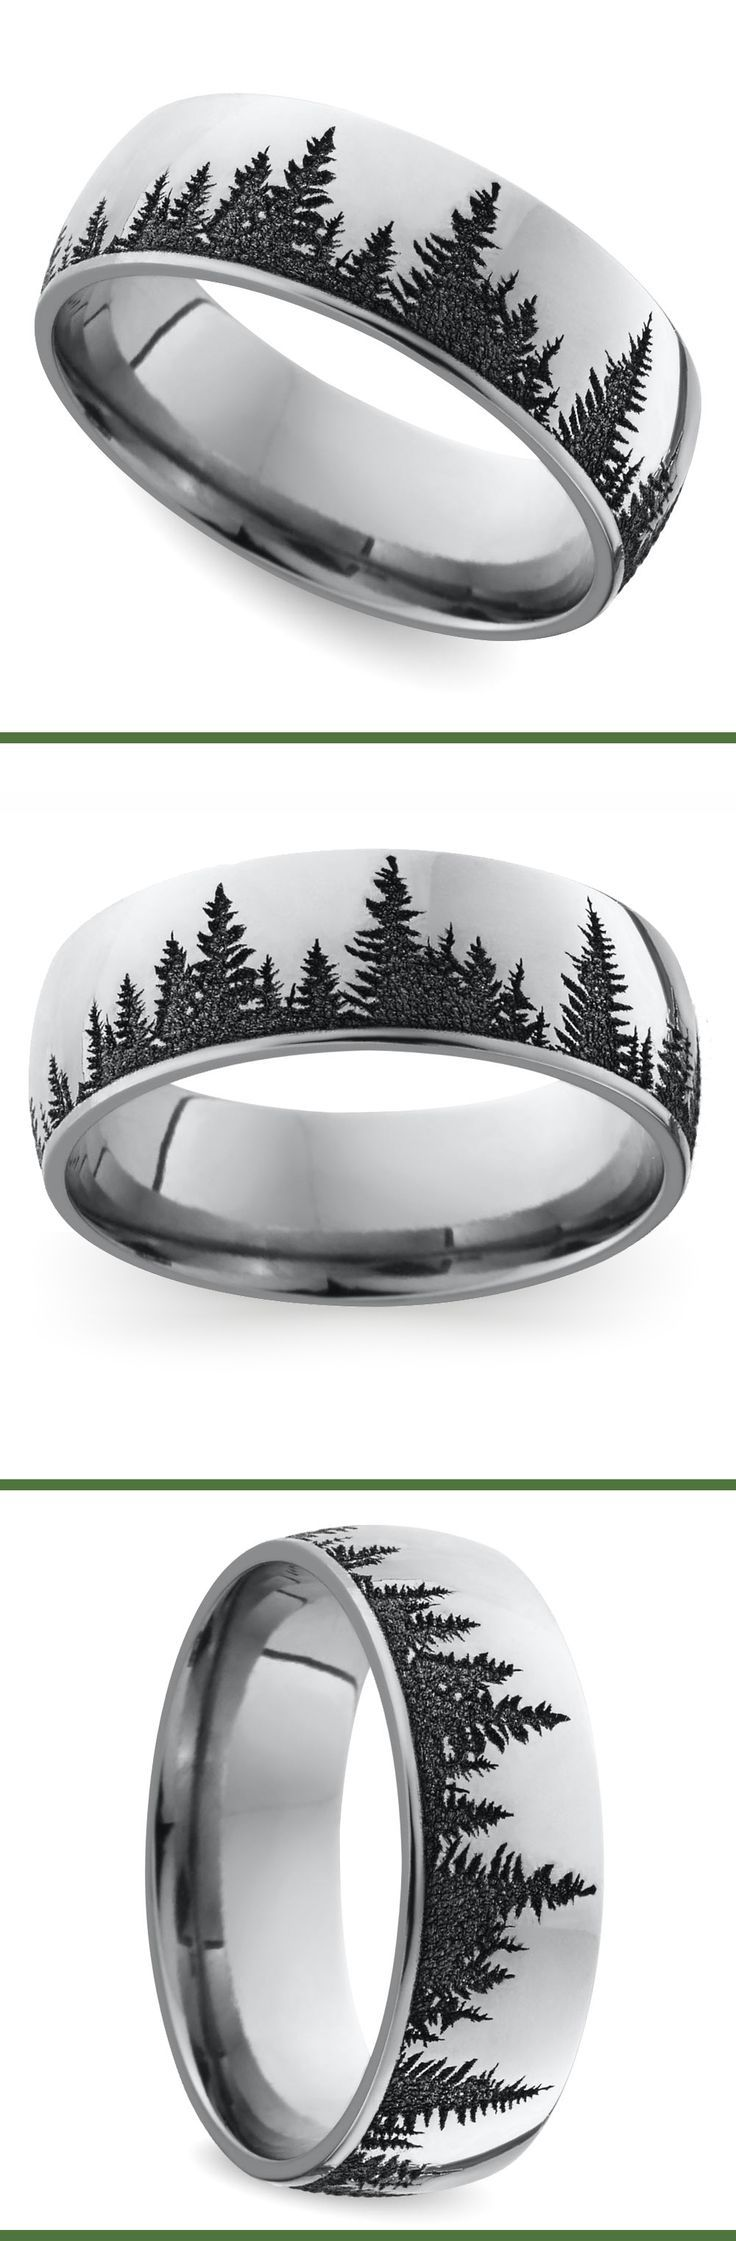 gay men gay wedding bands I want to marry a man whose dream wedding ring looks like this This domed 7 mm band features a serene pine forest pattern laser carved into cobalt for a